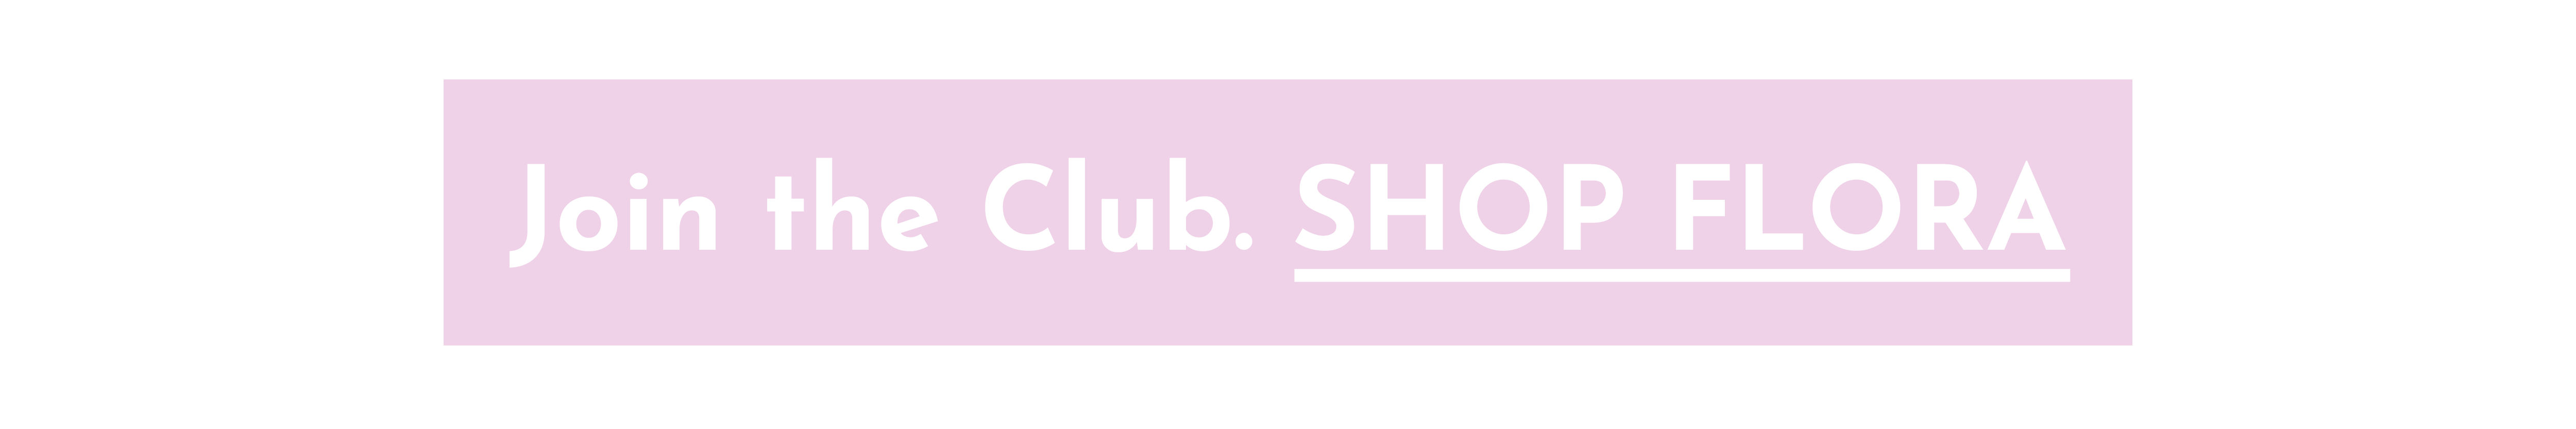 JOIN THE CLUB — SHOP FLORA